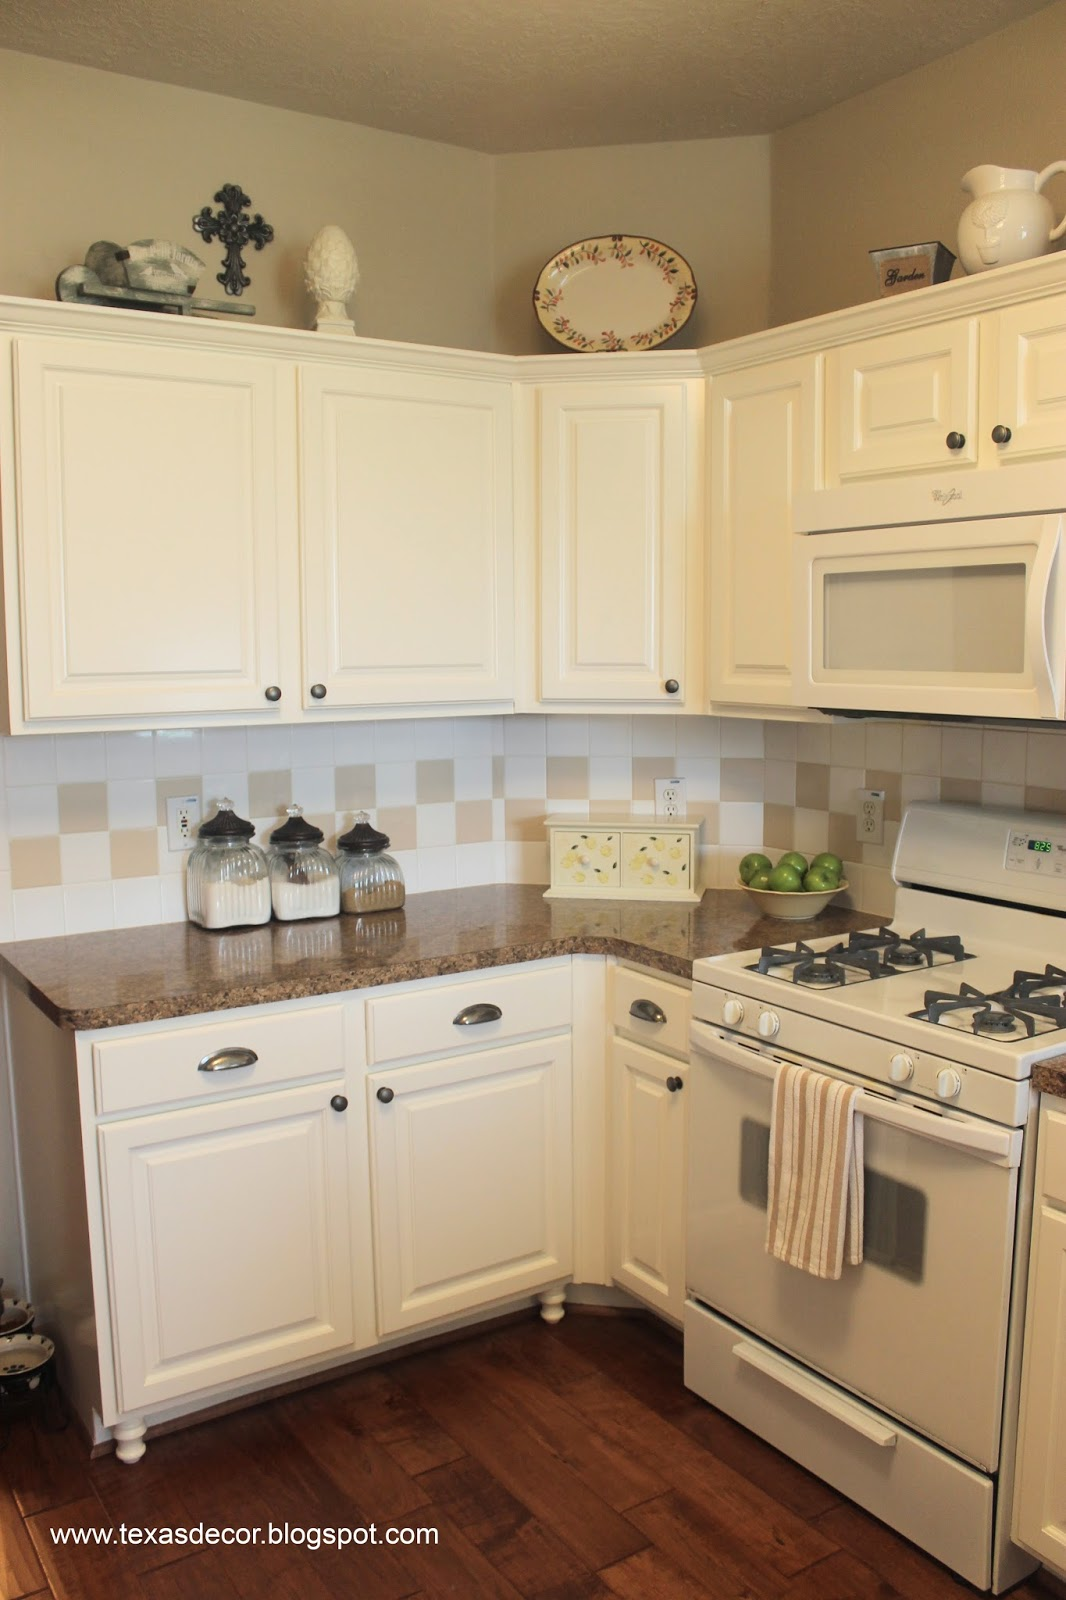 Texas decor painted kitchen cabinet reveal for Texas kitchen designs